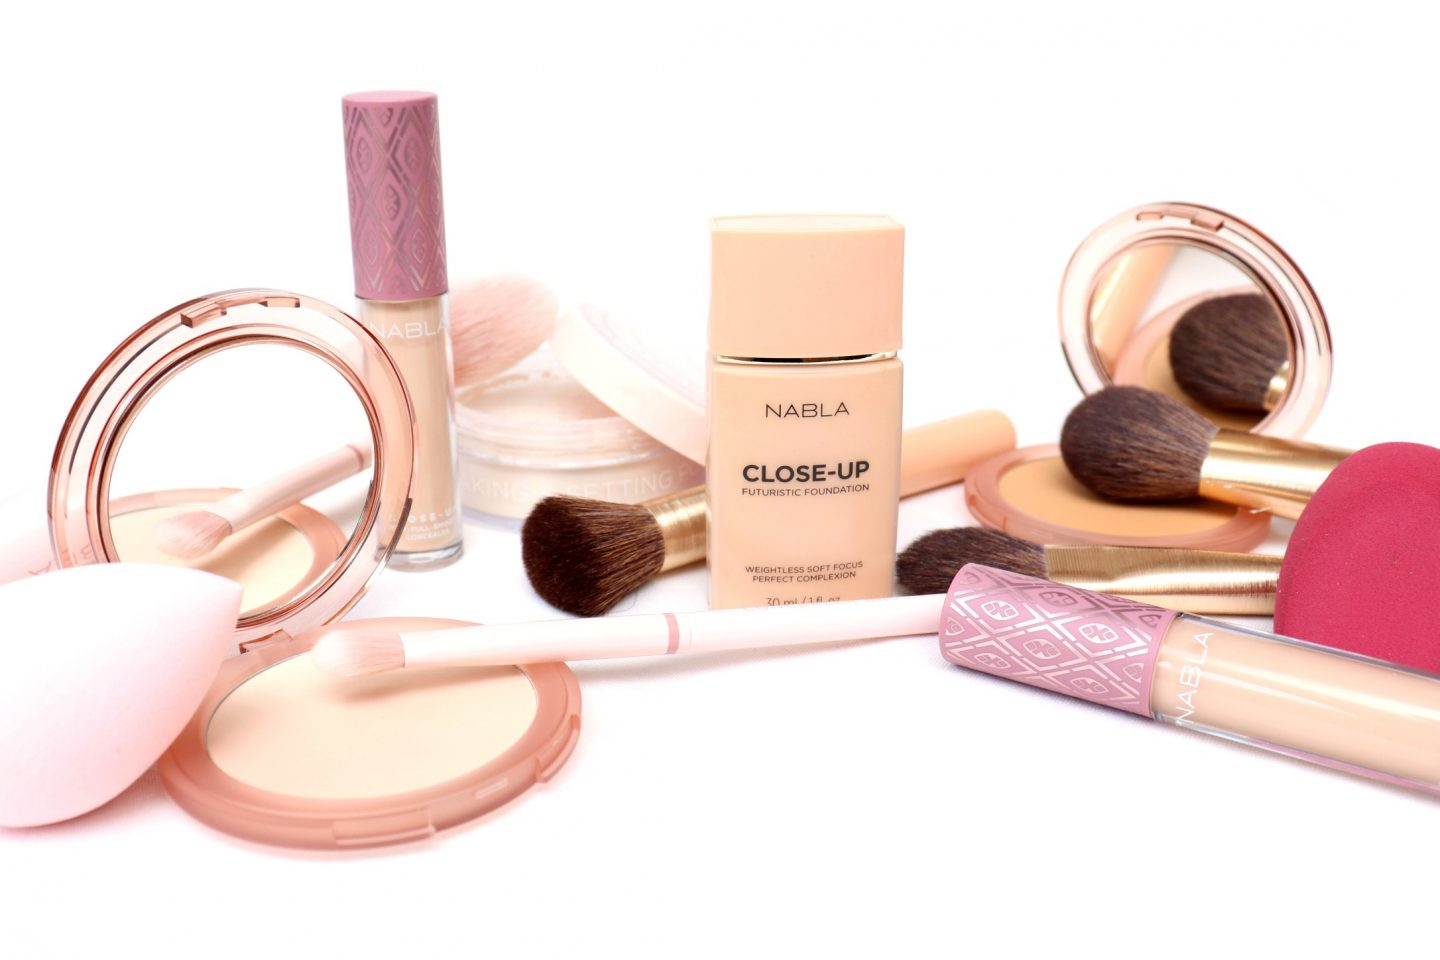 NABLA CLOSE-UP Collection Review